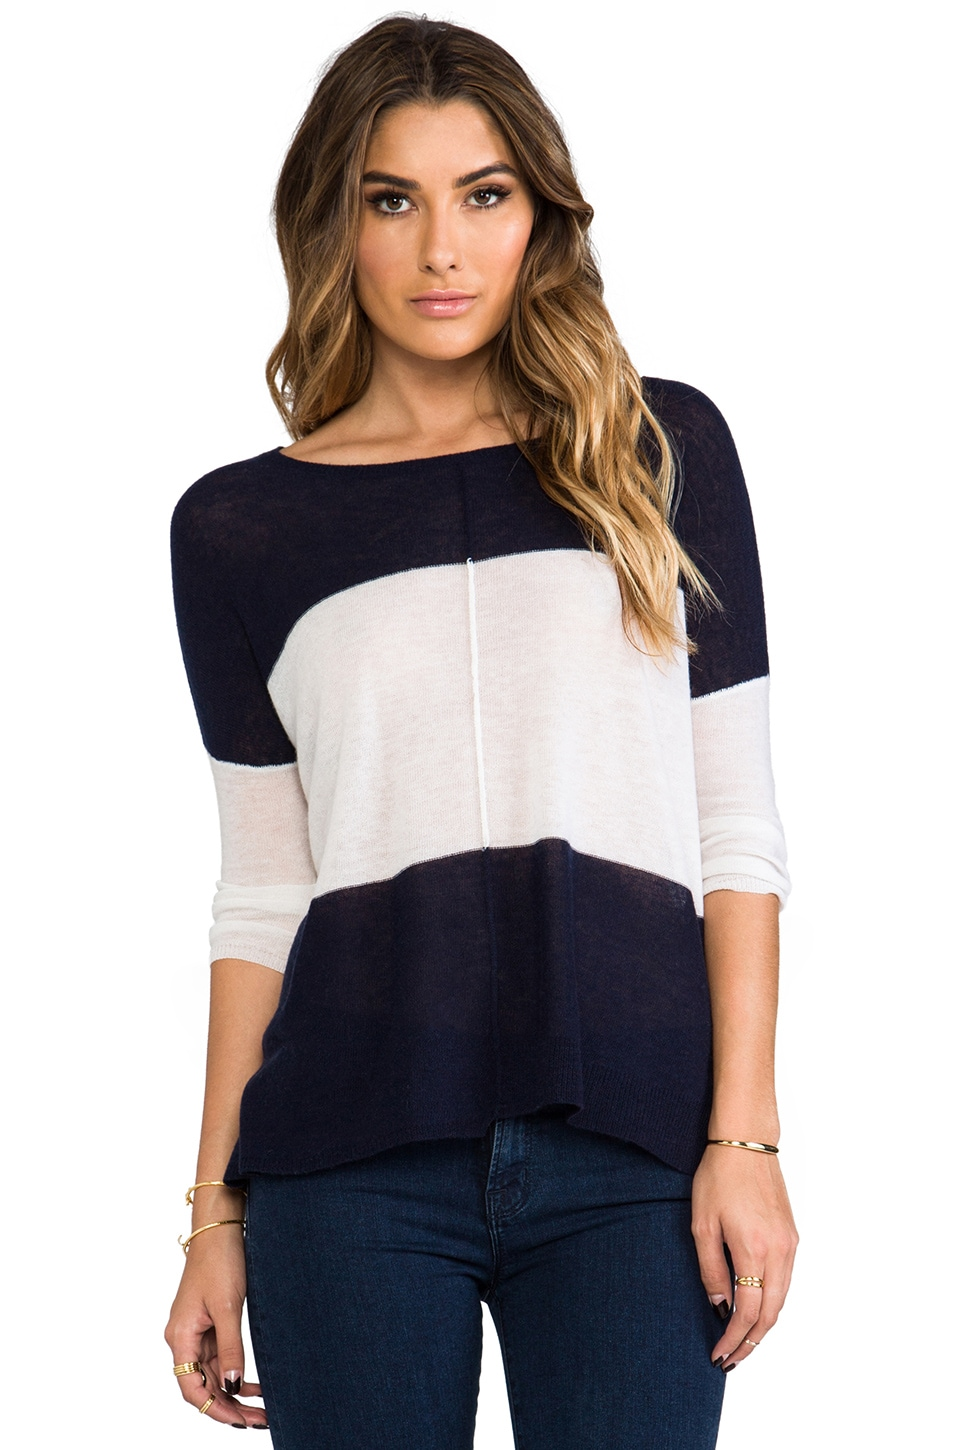 360CASHMERE Venus Cashmere Sweater in Navy & White